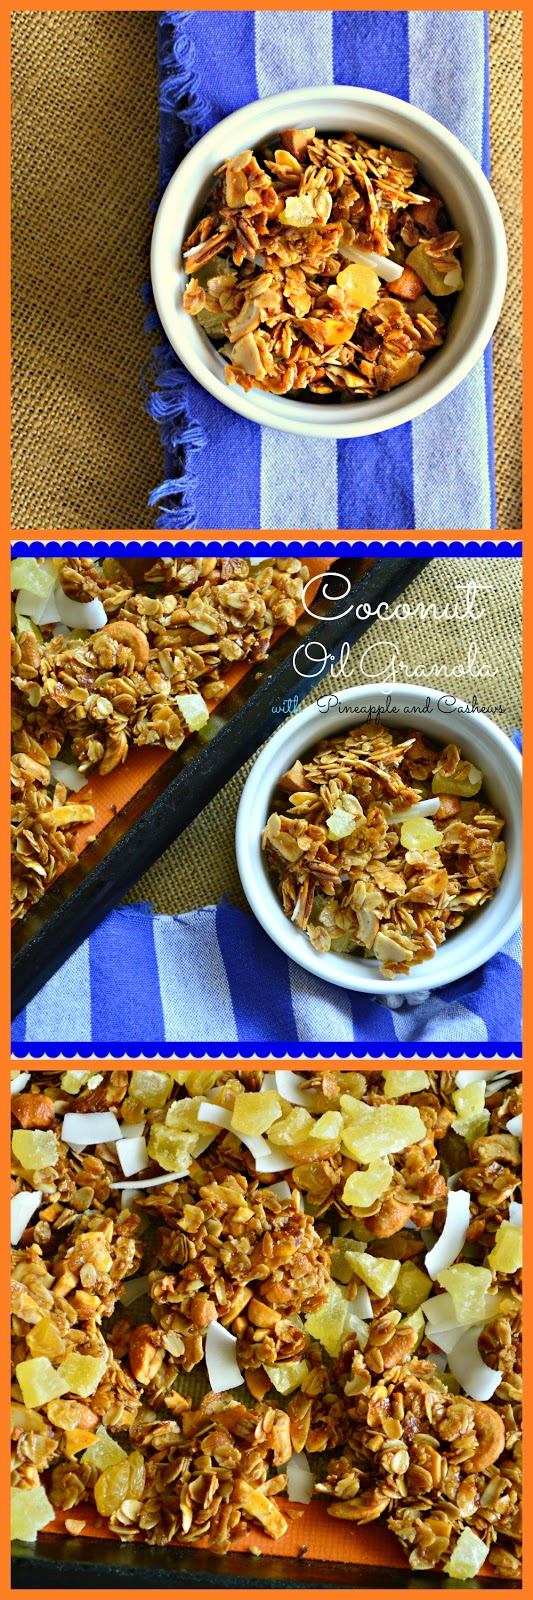 This granola laden with coconut and made with coconut oil also has dried pineapple and cashews. What a crunchy way to start the morning but this is also perfect for a snack! #granola #coconutoil #oats www.thisishowicook.com